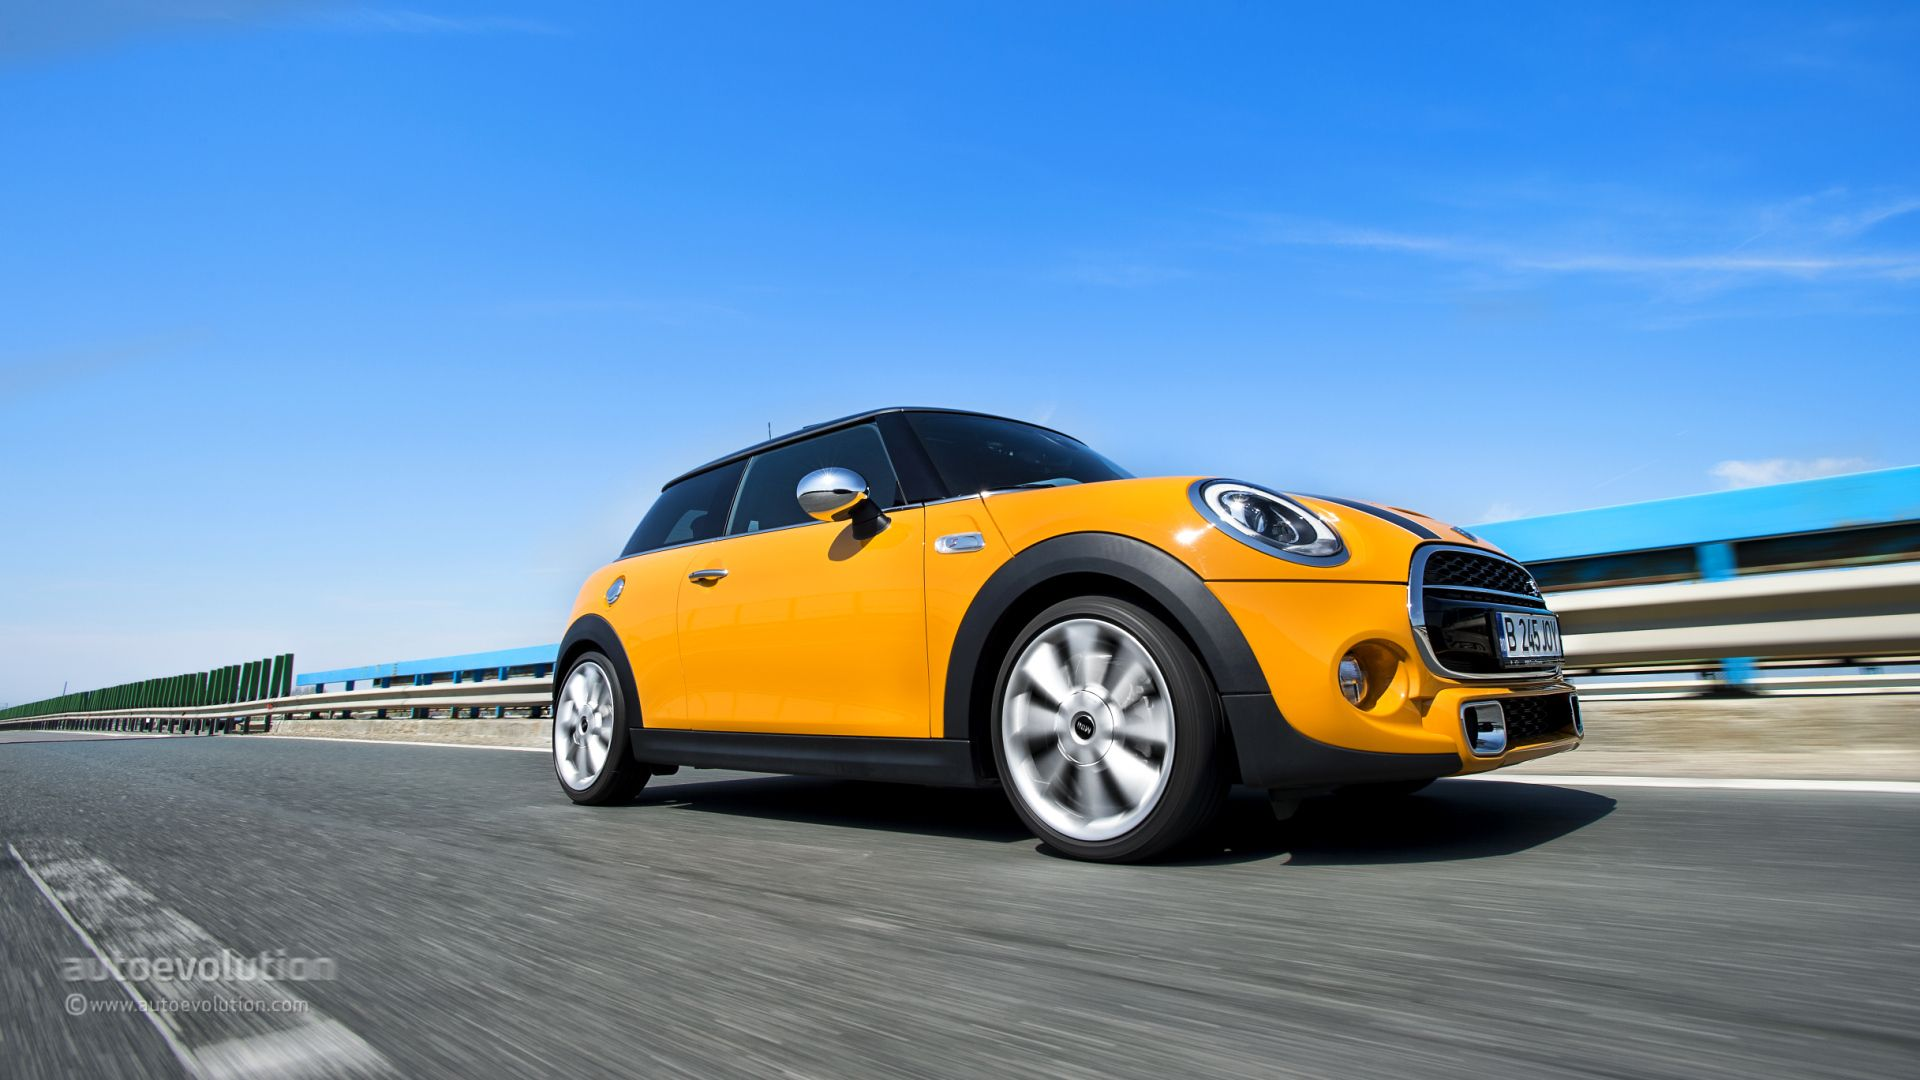 2014 MINI Cooper High Resolution Wallpaper Is Hd Wallpaper